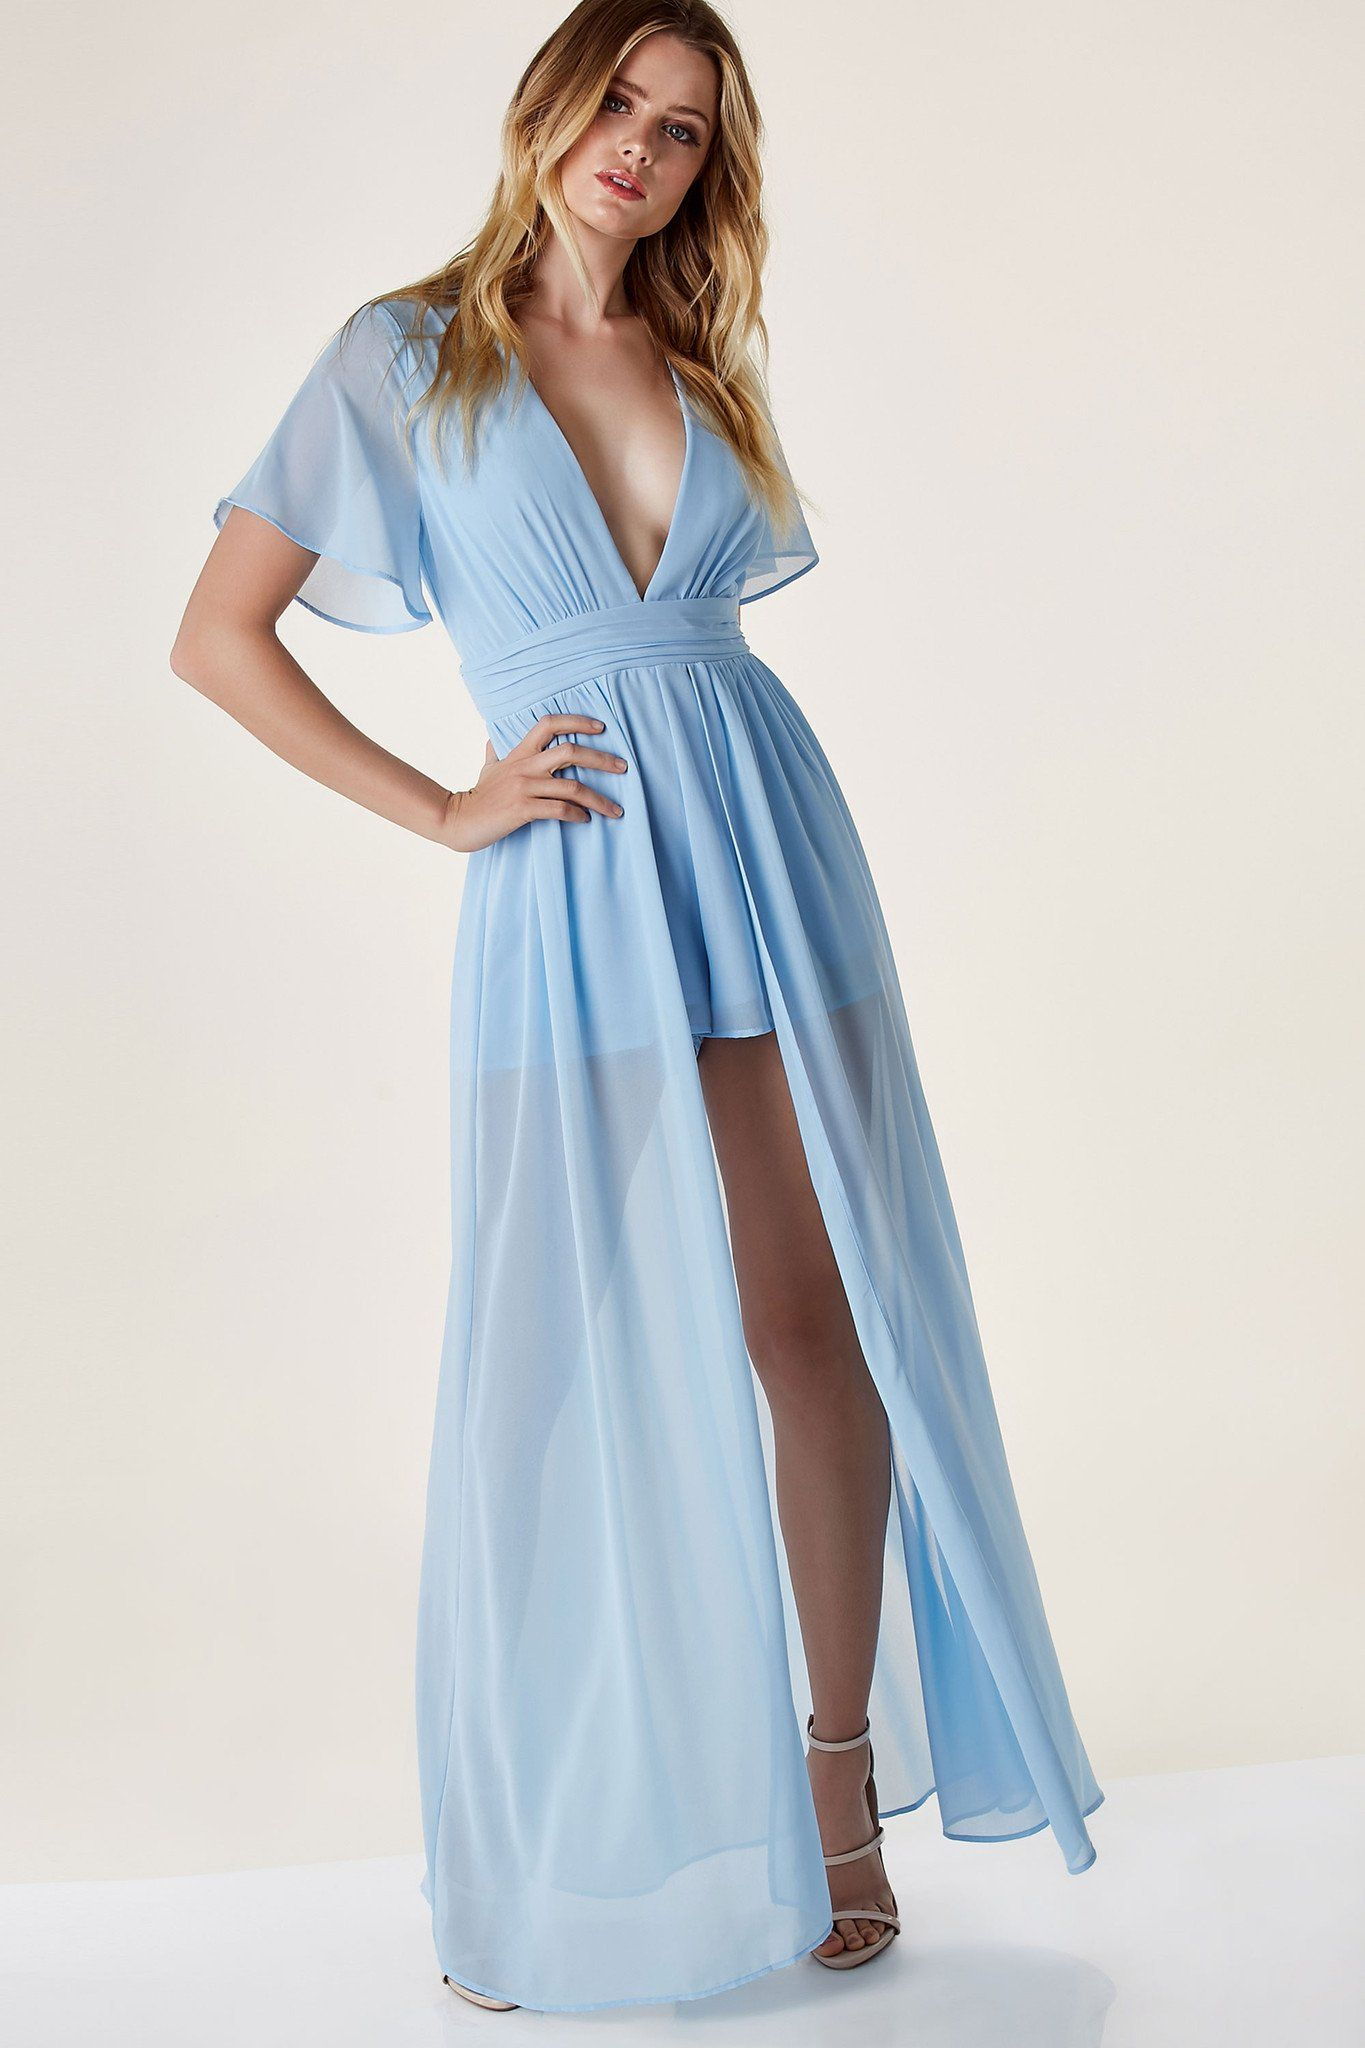 0ea22fdd7c0 Lightweight chiffon romper with deep V-neckline and flared short sleeves.  Flowy maxi overlay with cut out back and button zip closure.